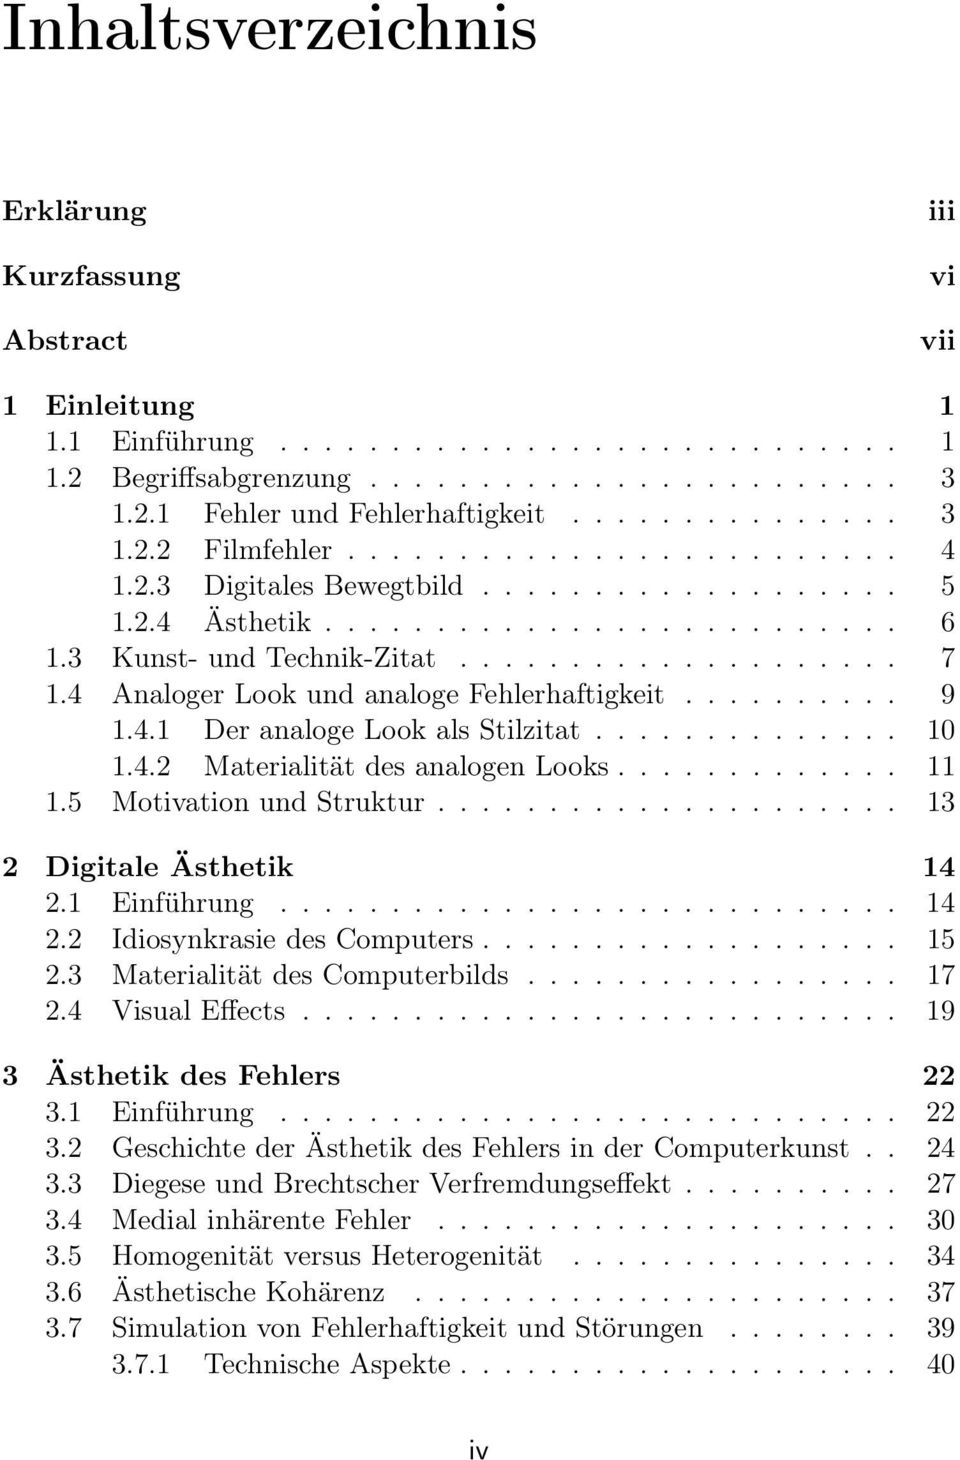 5 MotivationundStruktur... 13 2 Digitale Ästhetik 14 2.1 Einführung... 14 2.2 IdiosynkrasiedesComputers... 15 2.3 MaterialitätdesComputerbilds... 17 2.4 VisualEffects... 19 3 Ästhetik des Fehlers 22 3.